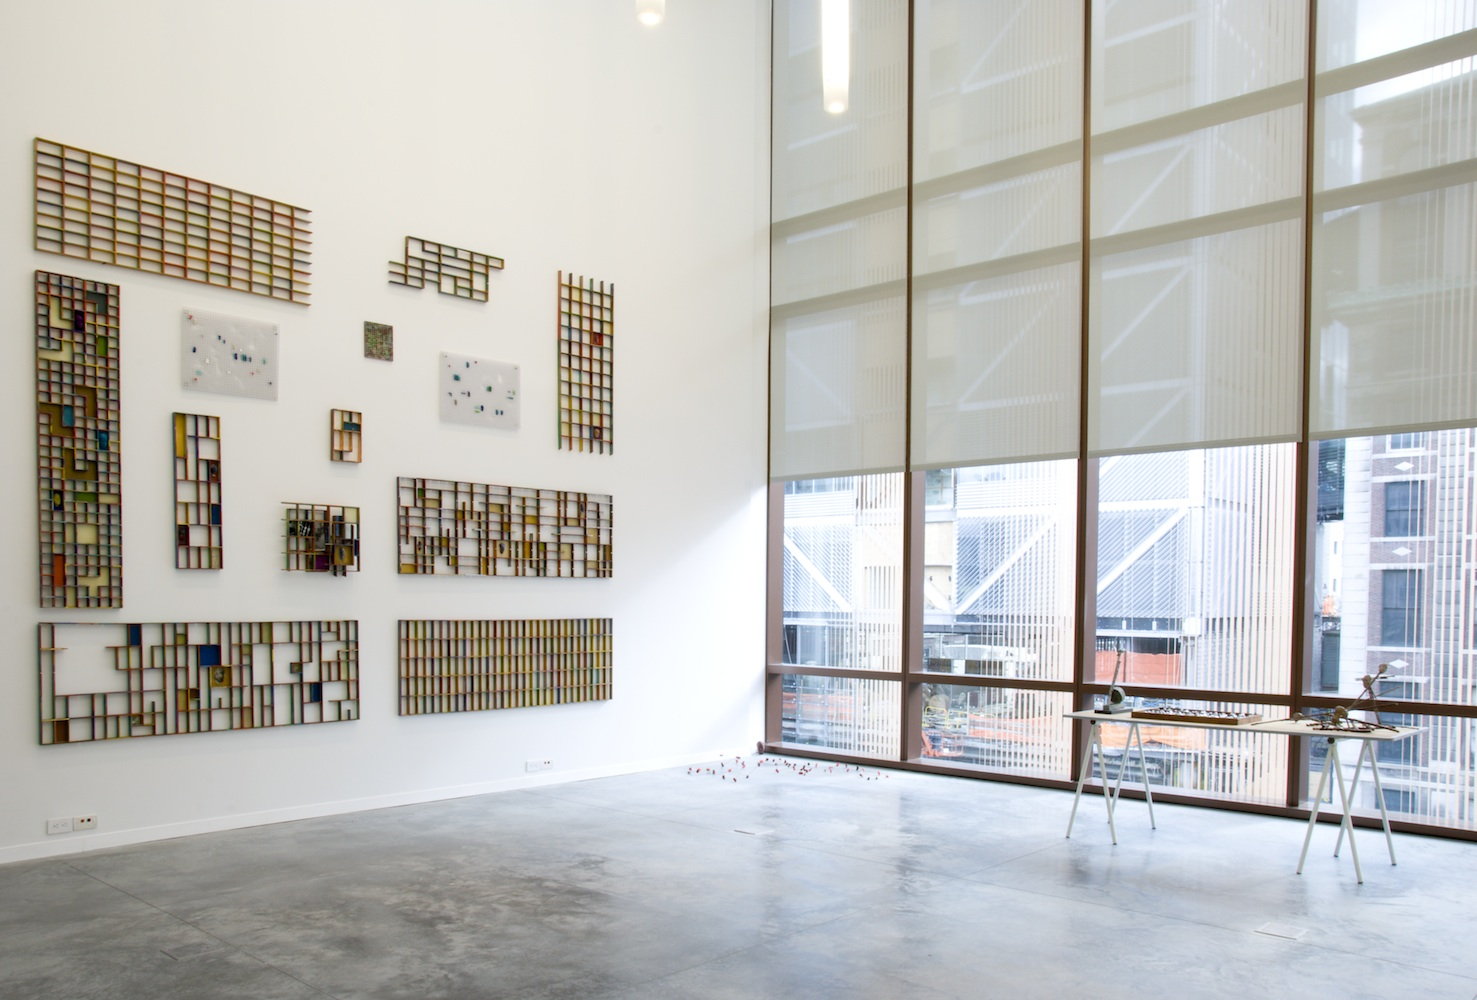 Louise McCagg 2000-2010 , 2010 Inaugural exhibition. Installation view at The Diana Center, Barnard College.